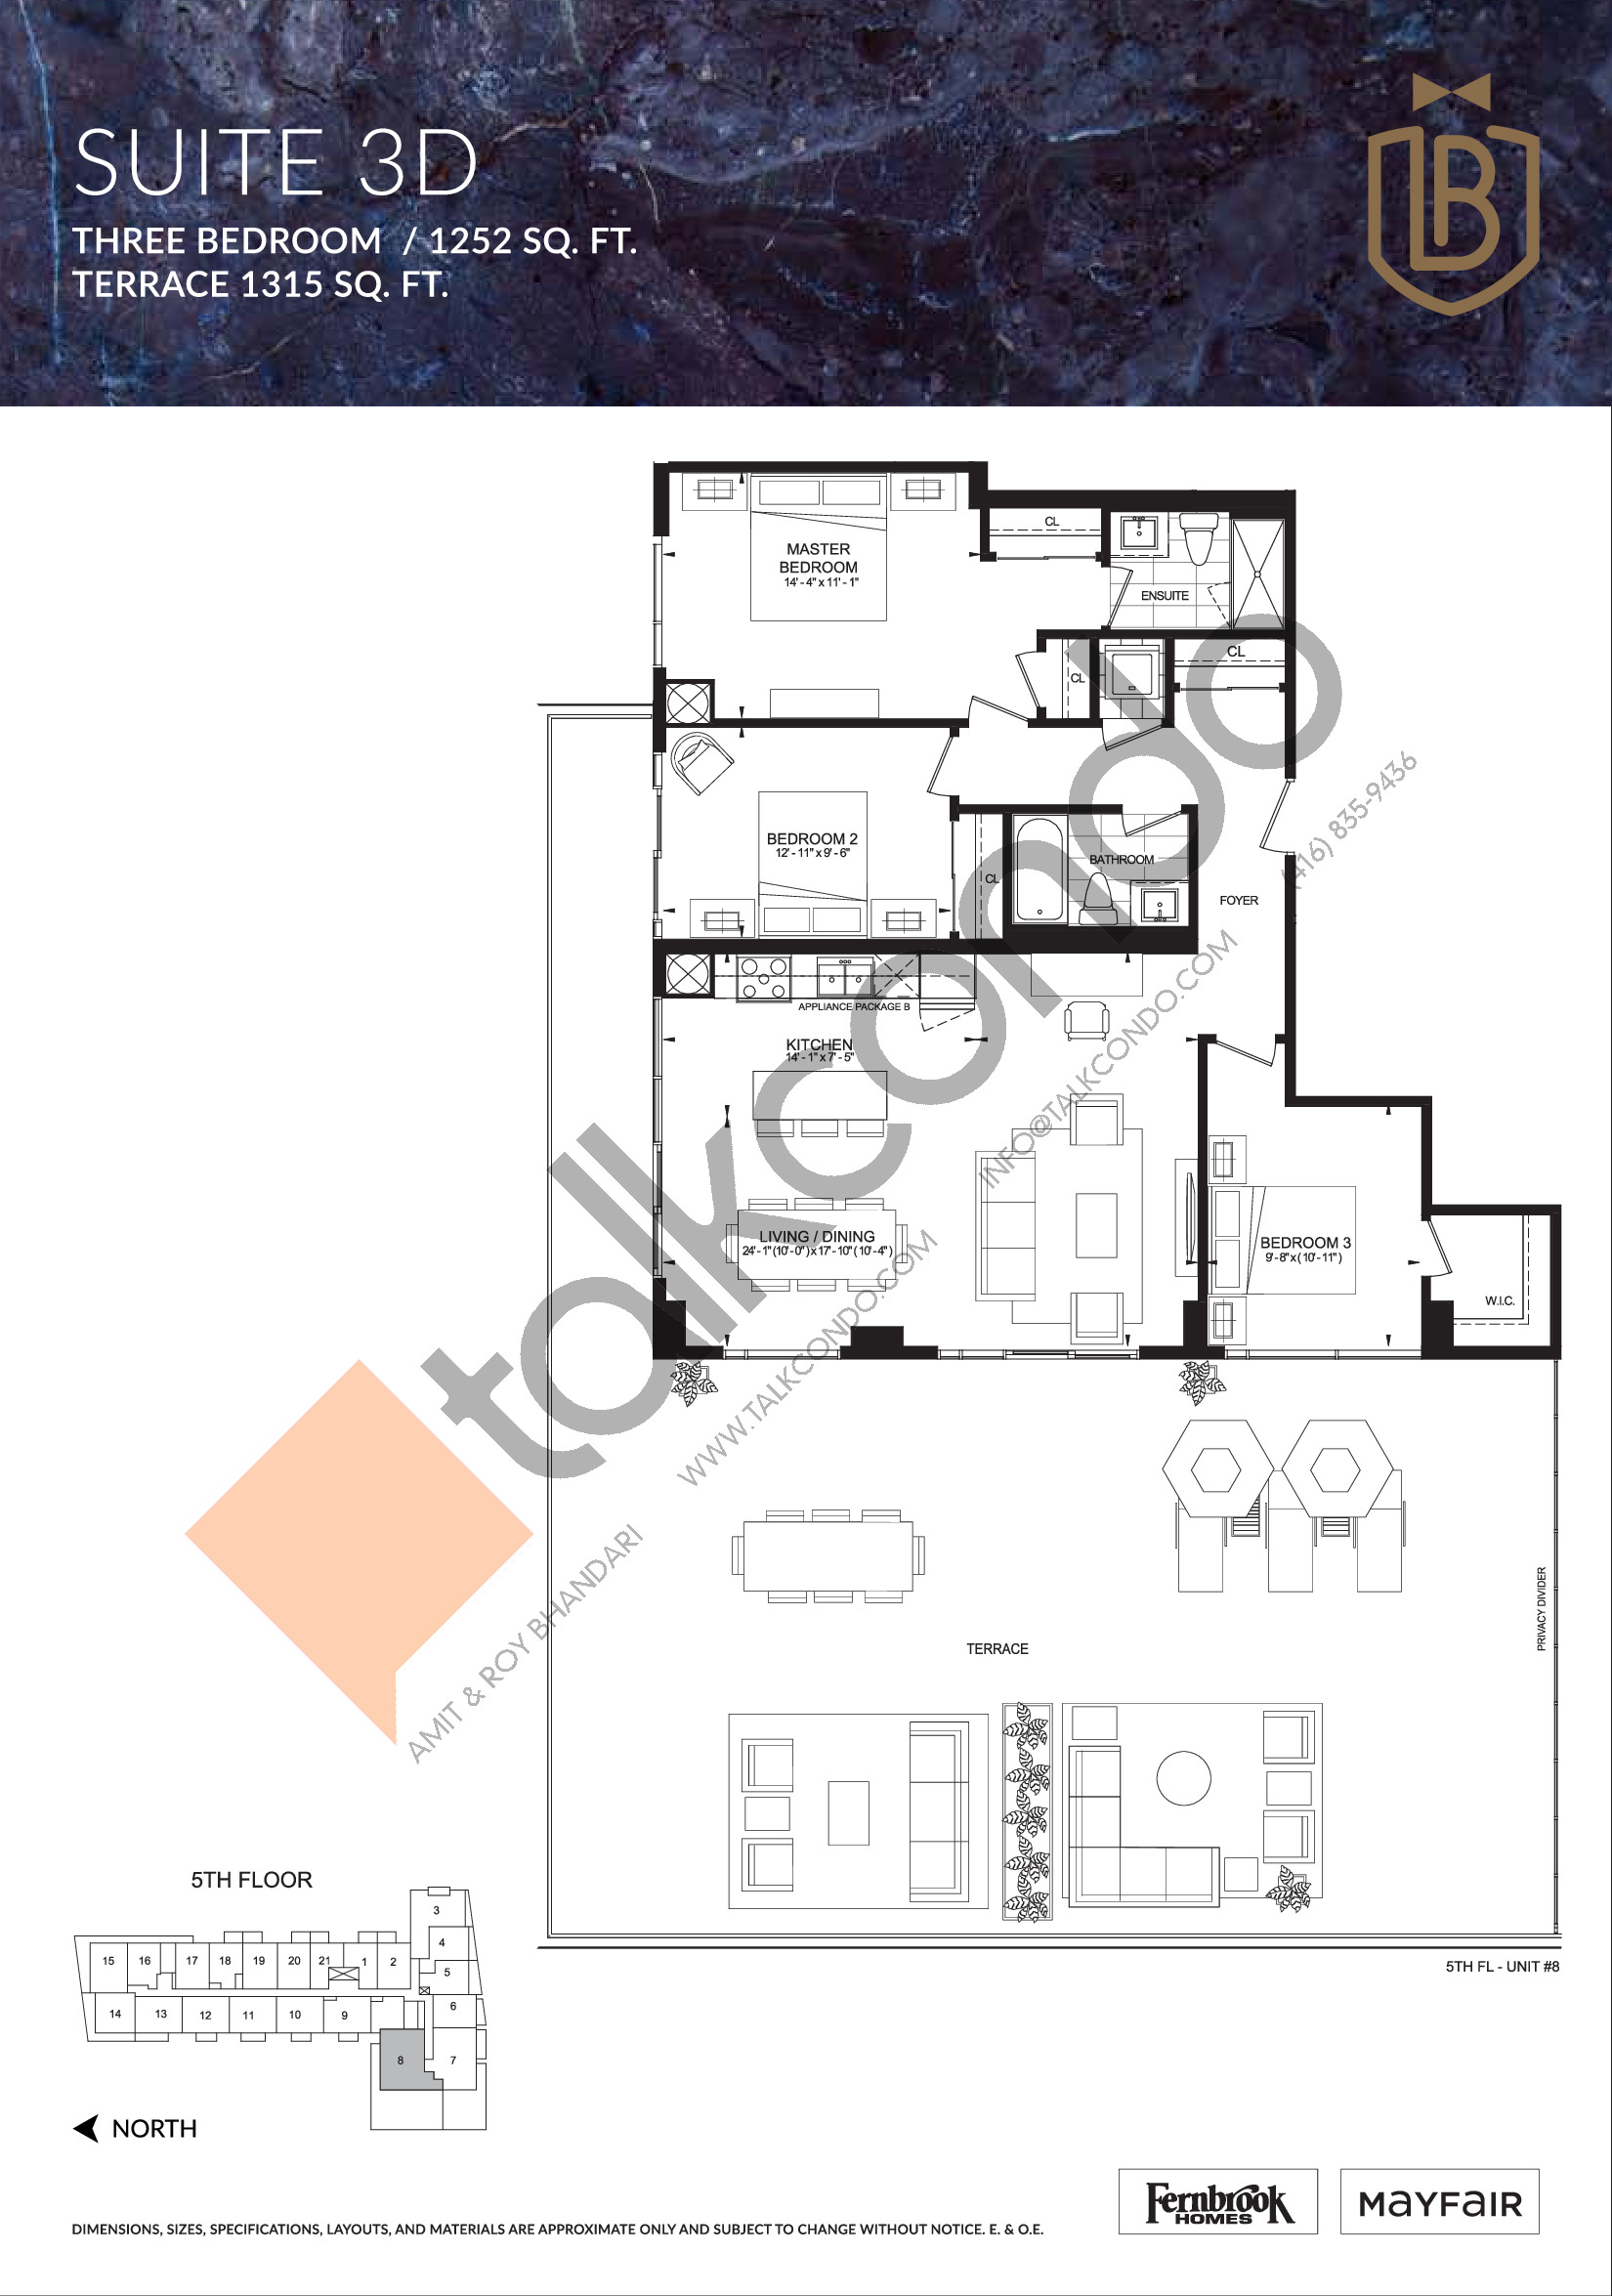 Suite 3D (Terrace) Floor Plan at The Butler Condos - 1252 sq.ft